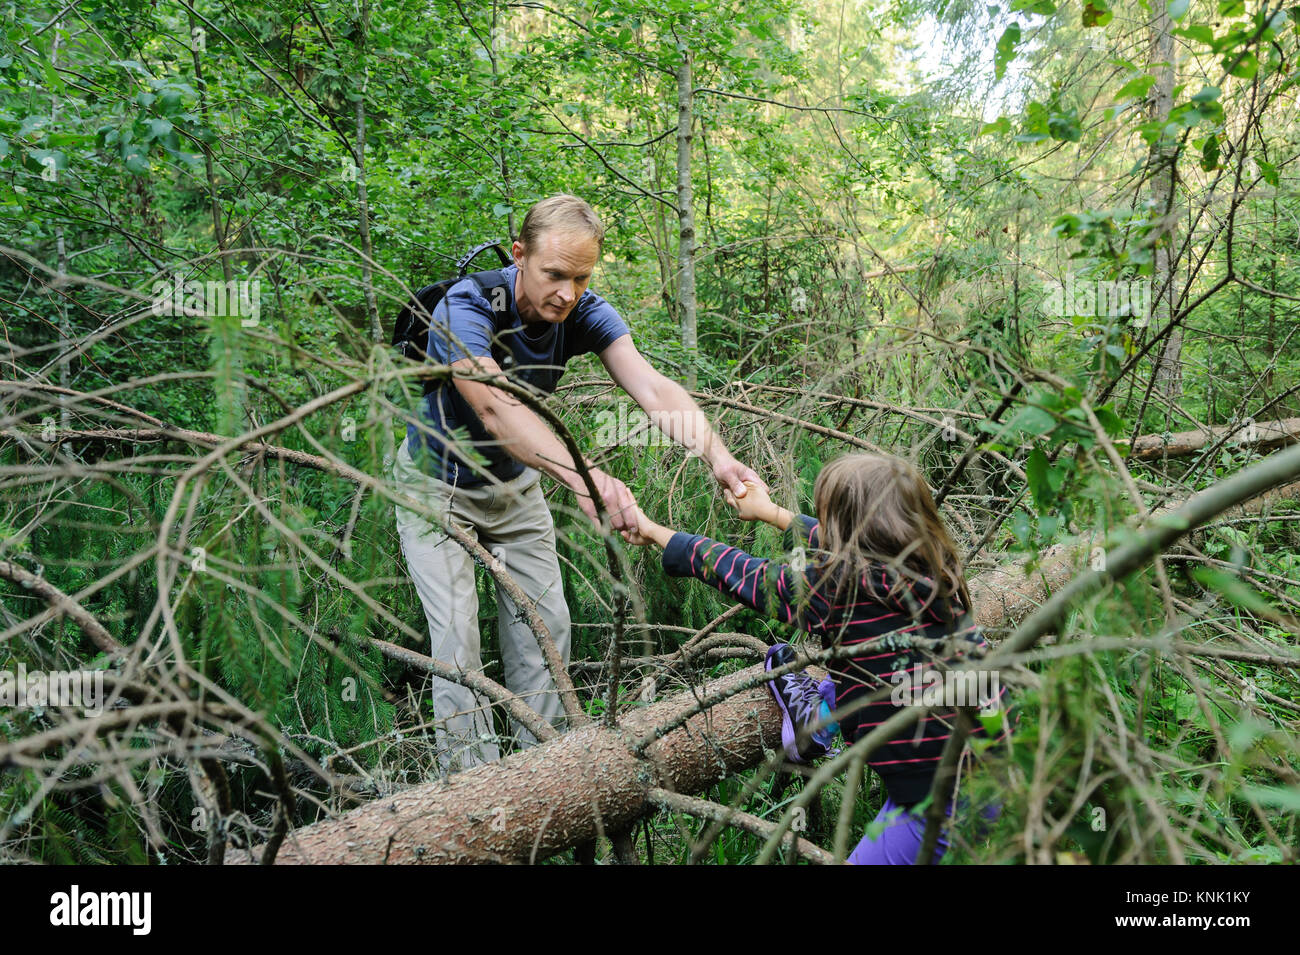 Overcoming obstacles while walking in the forest. The adult is helping the girl to cross the fallen tree. - Stock Image